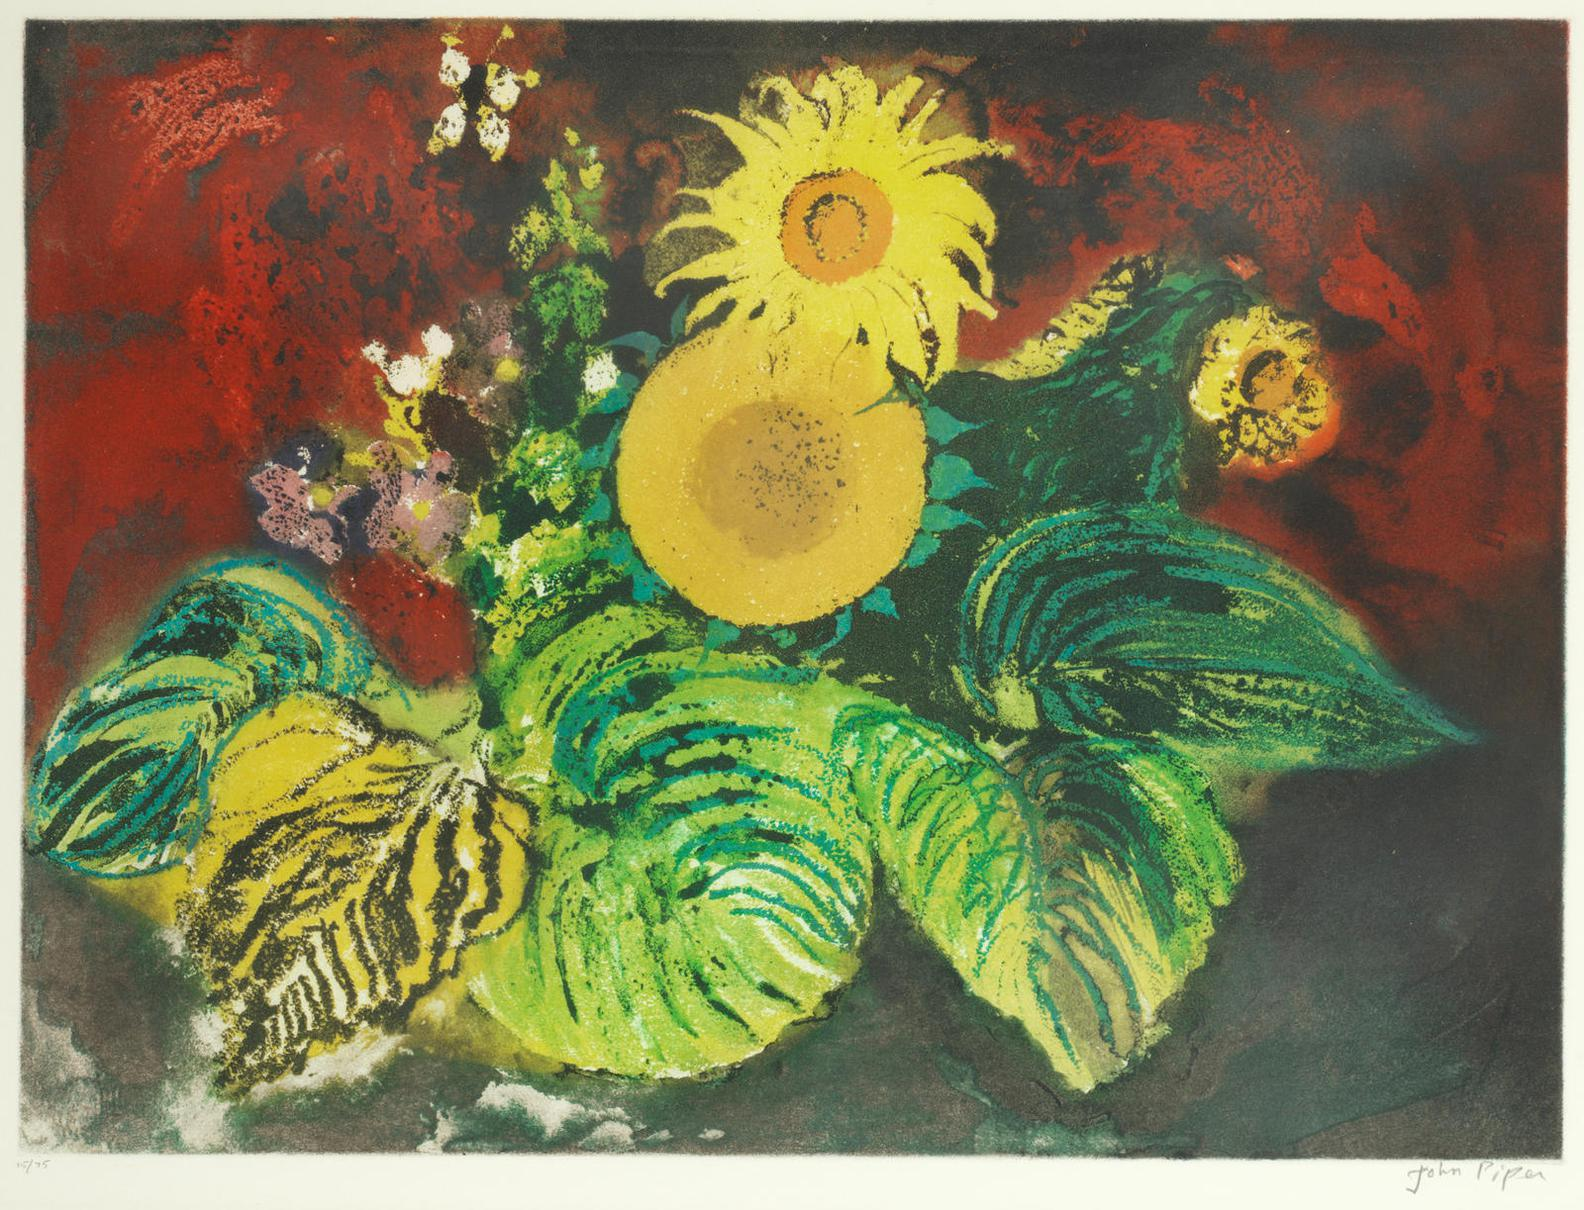 John Piper-Sunflowers (Levinson 420)-1989